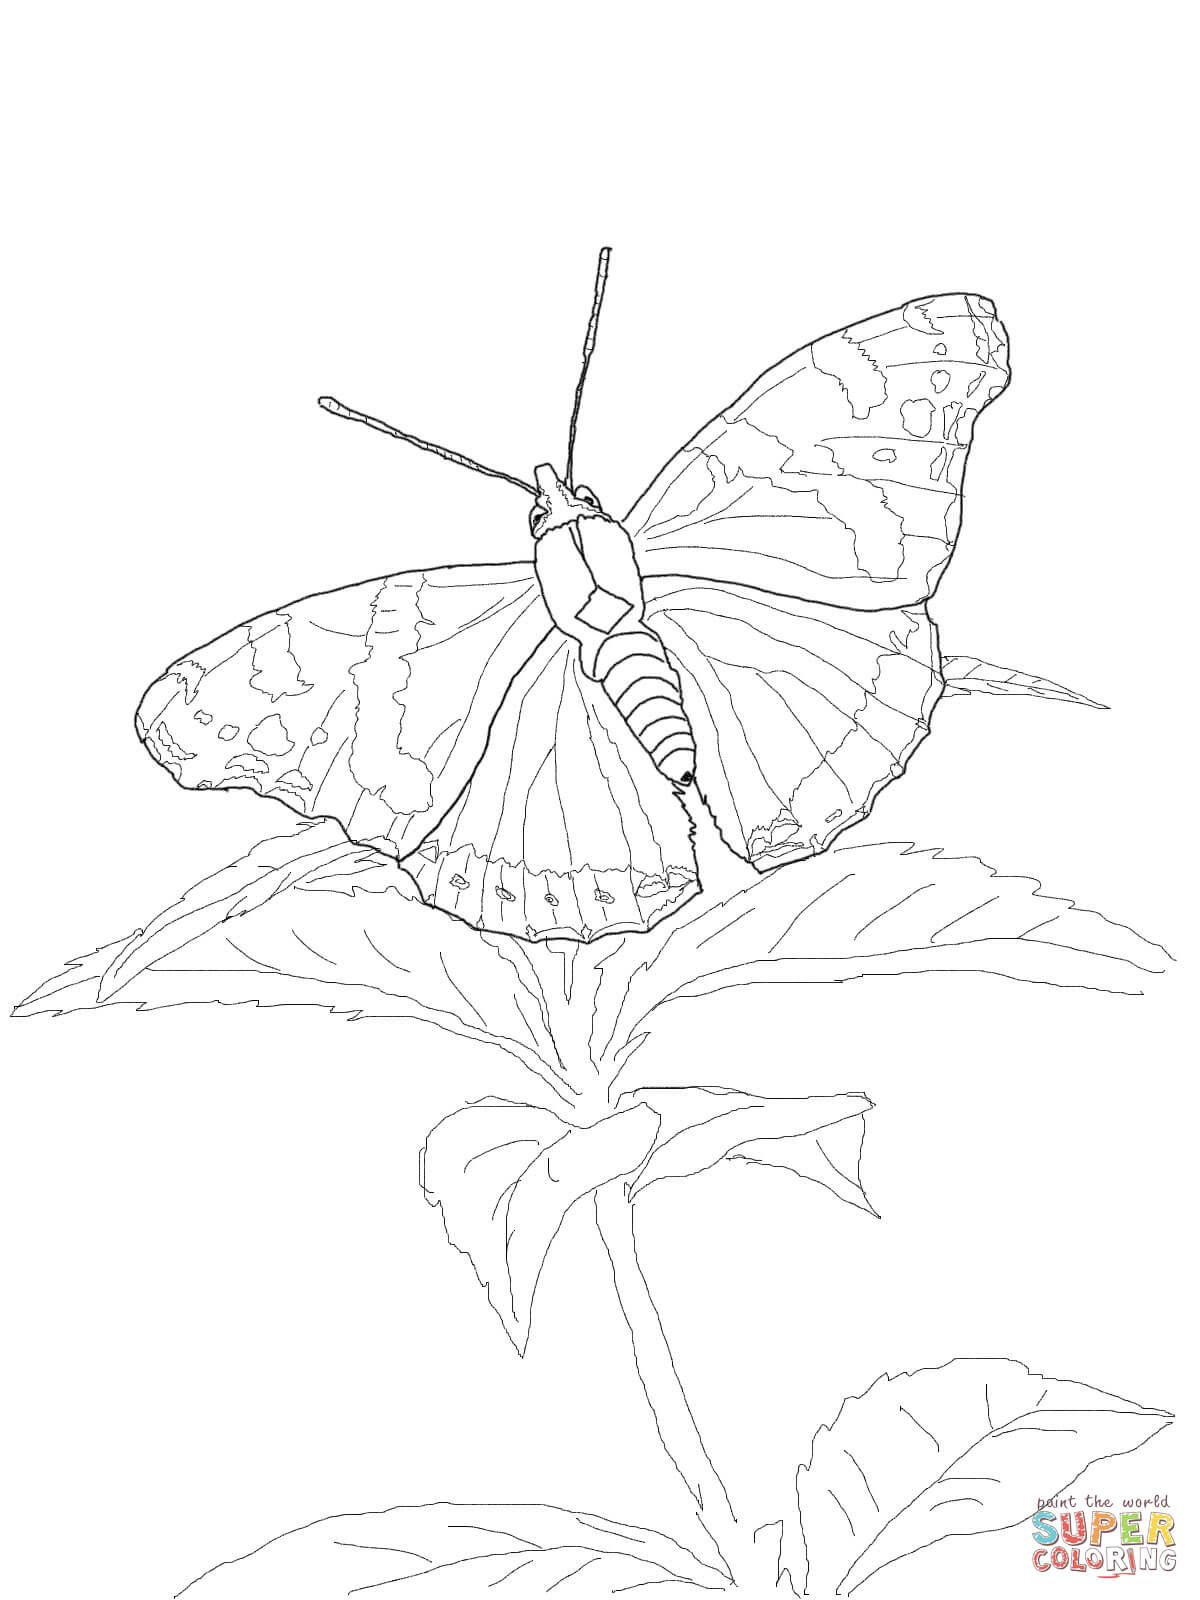 Red Admiral Butterfly Super Coloring In 2020 Butterfly Black